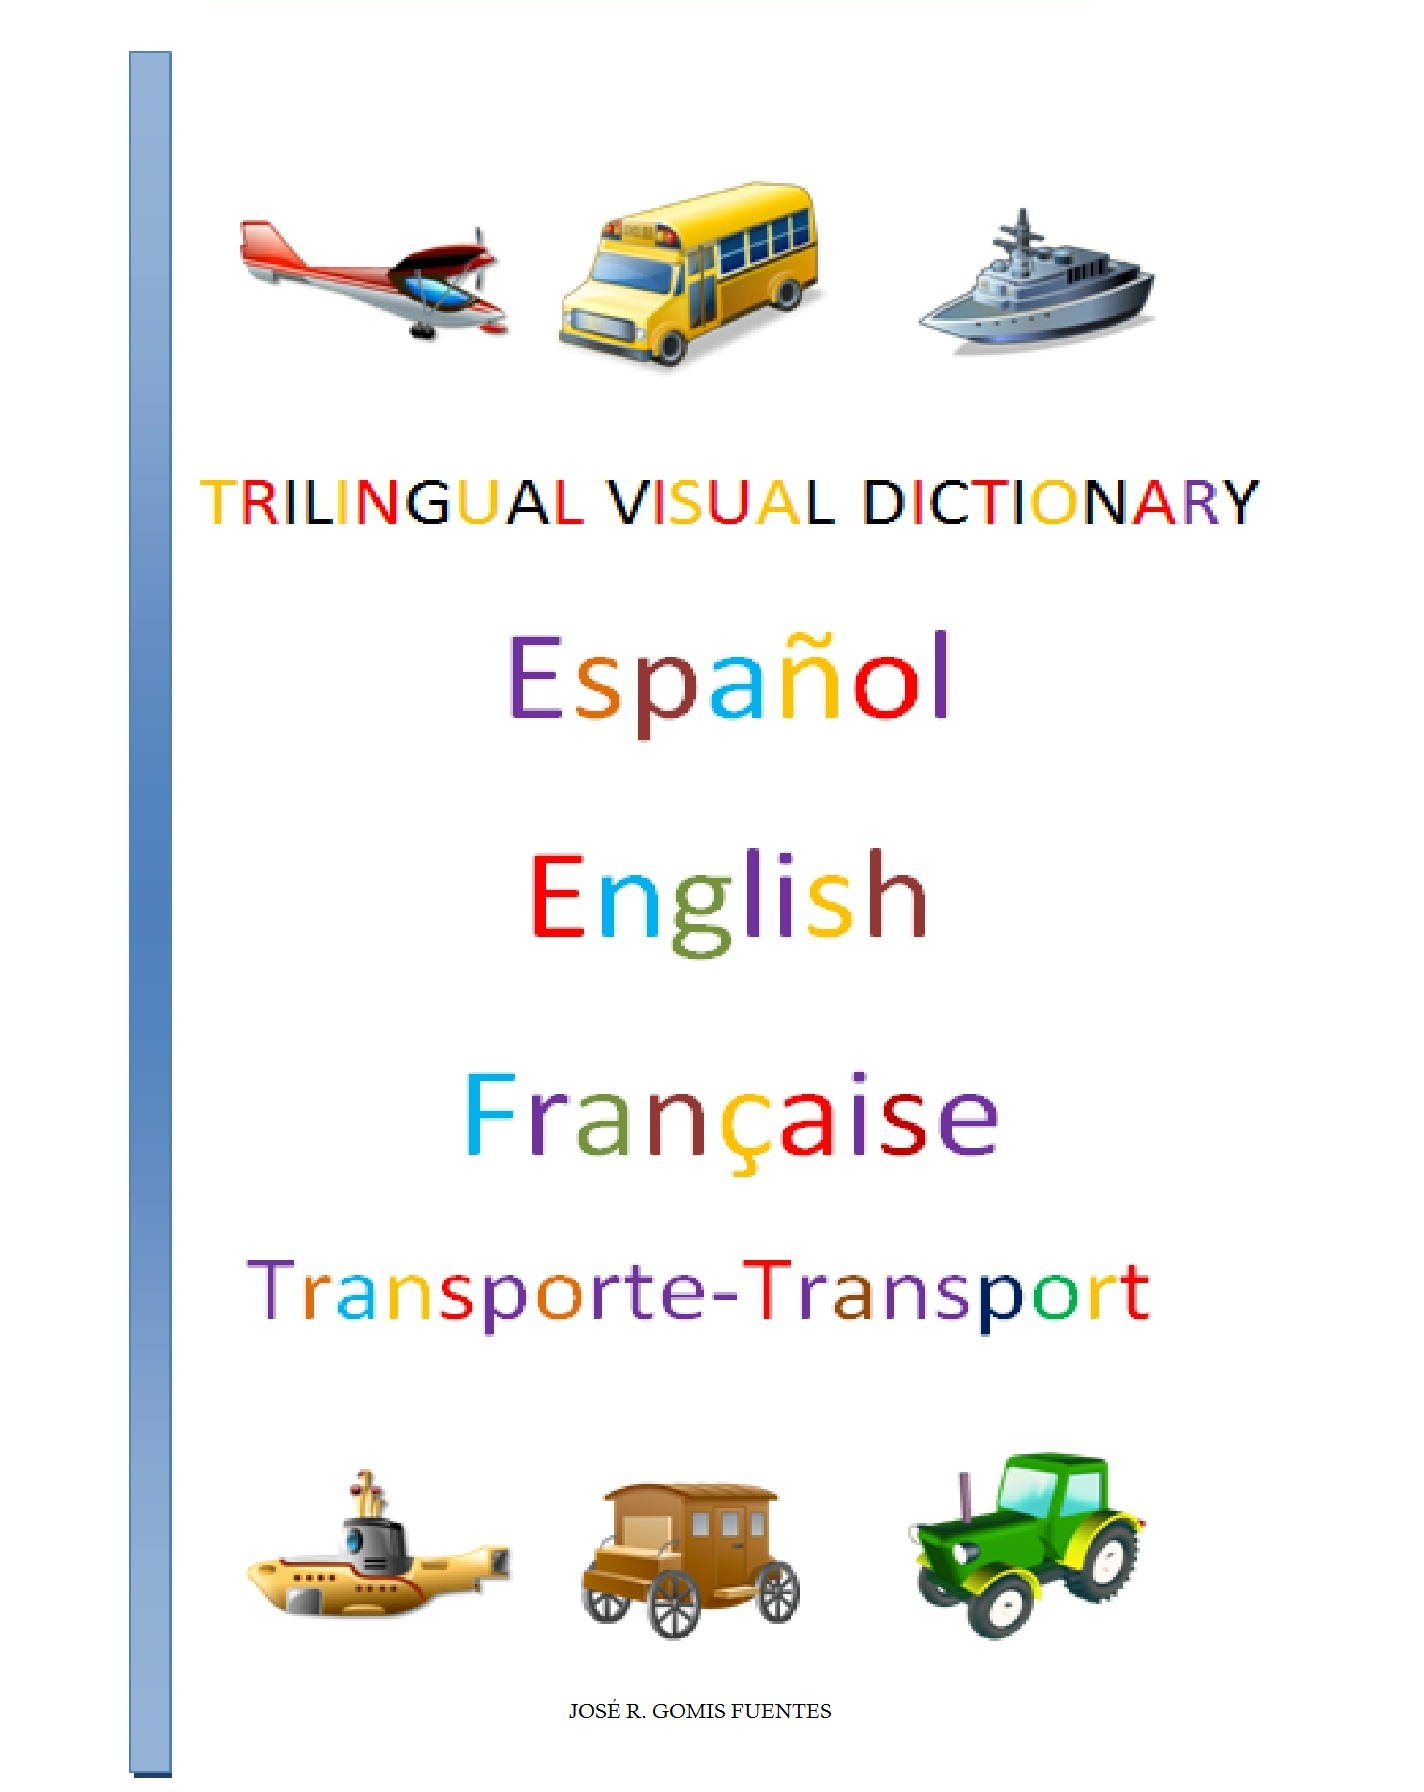 Trilingual Visual Dictionary. Transports in Spanish, English and French By: Jose Remigio Gomis Fuentes Sr